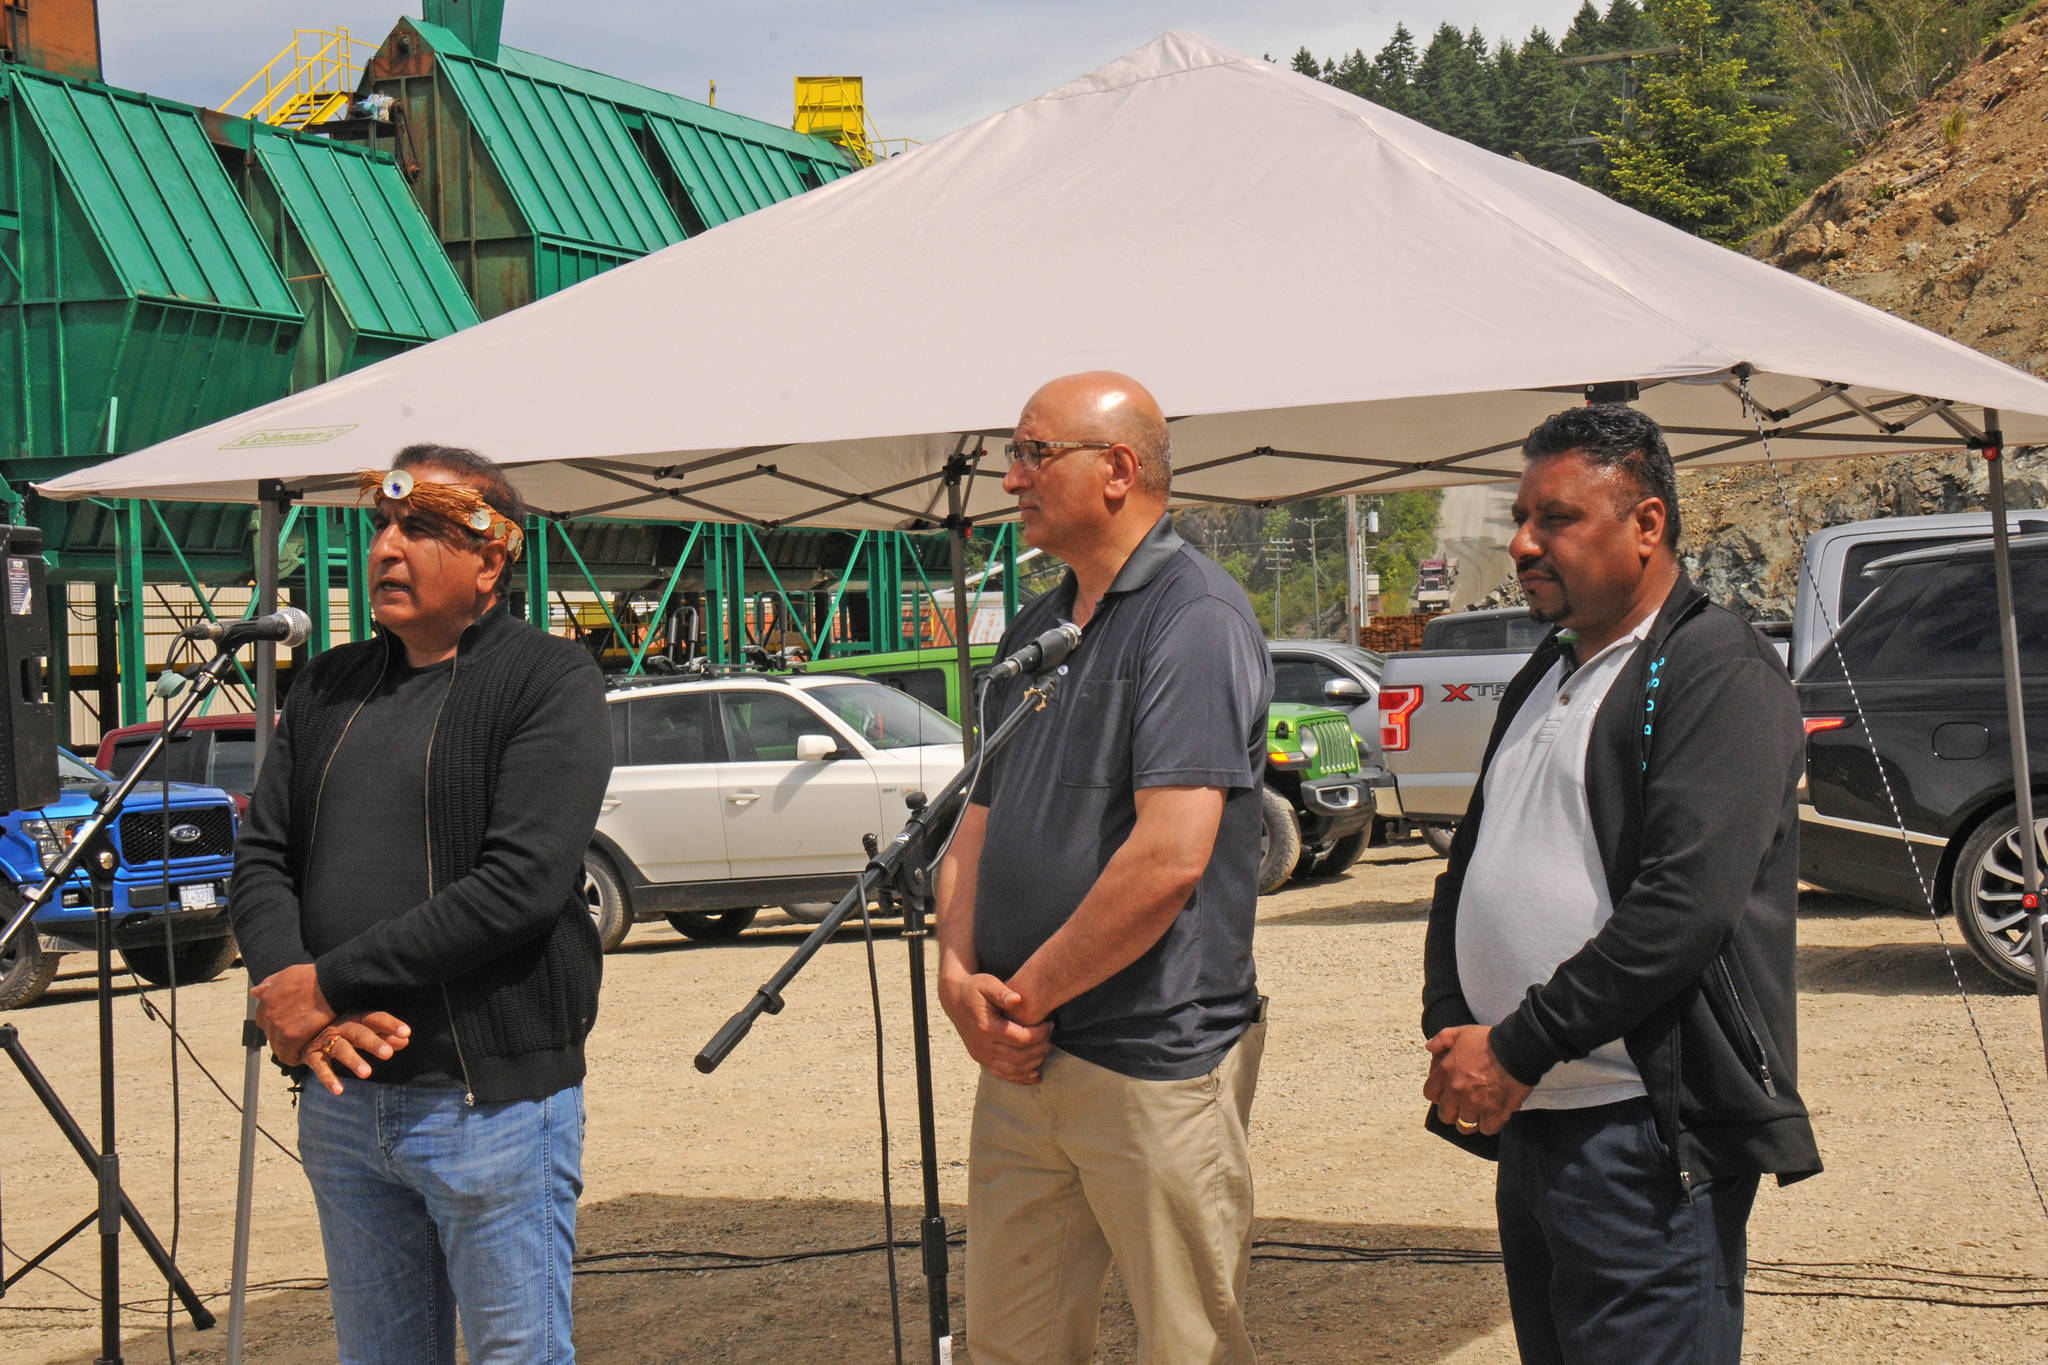 San Group owners Kamal Sanghera, left, Suki Sanghera and Paul Deol (from the Langley operation) announce $100 million in investments in their Port Alberni forestry operations on June 2, 2021. (SUSAN QUINN/ Alberni Valley News)